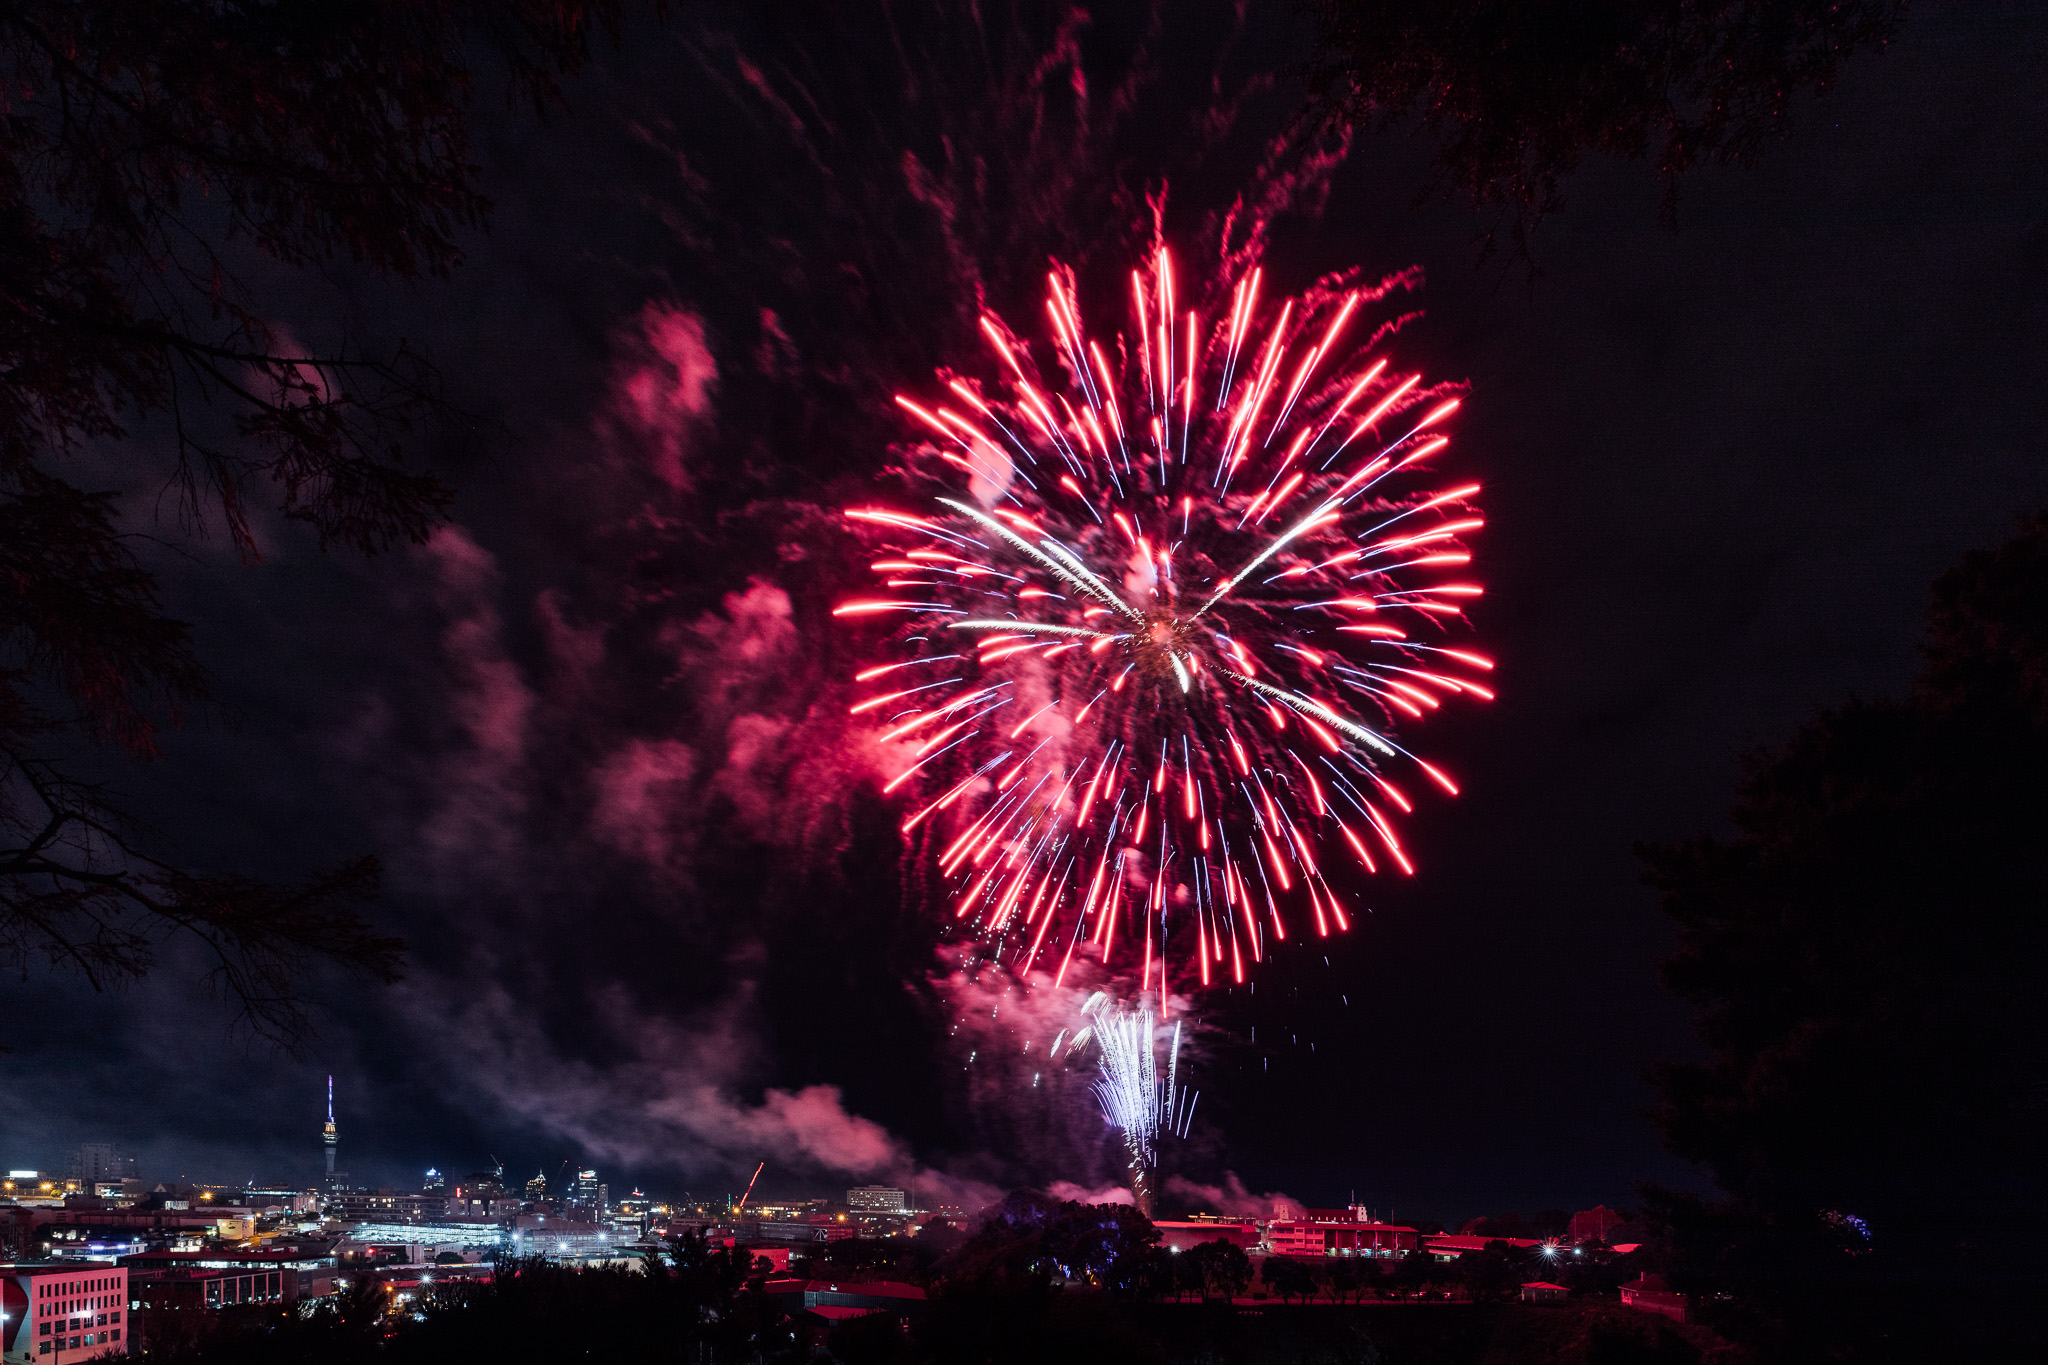 Auckland Grammar School 150th - Celebration fireworks